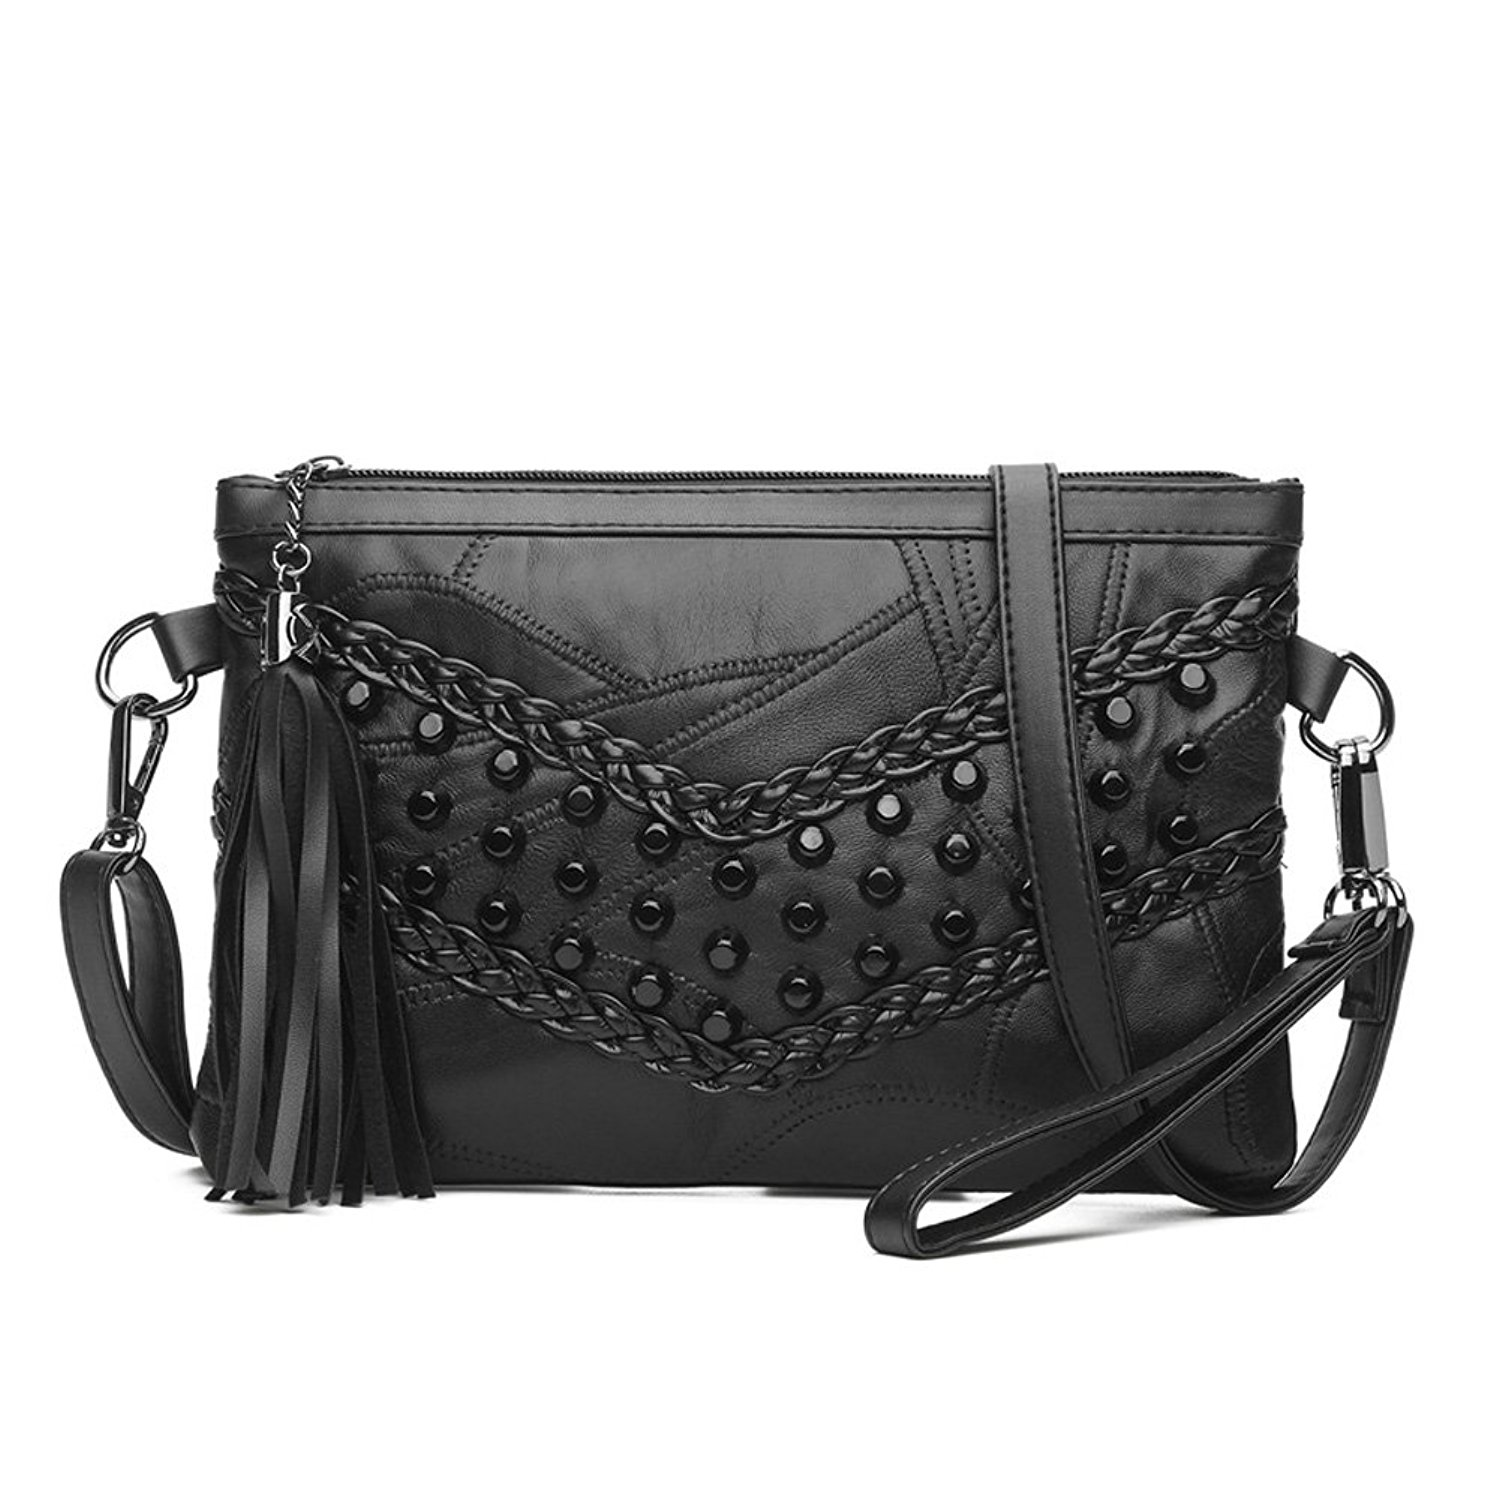 39951e7bca0d4a Get Quotations · KARRESLY Women's Rivets Studded Shoulder Bag Black Tassel  Clutch Bag Cross Body Bags